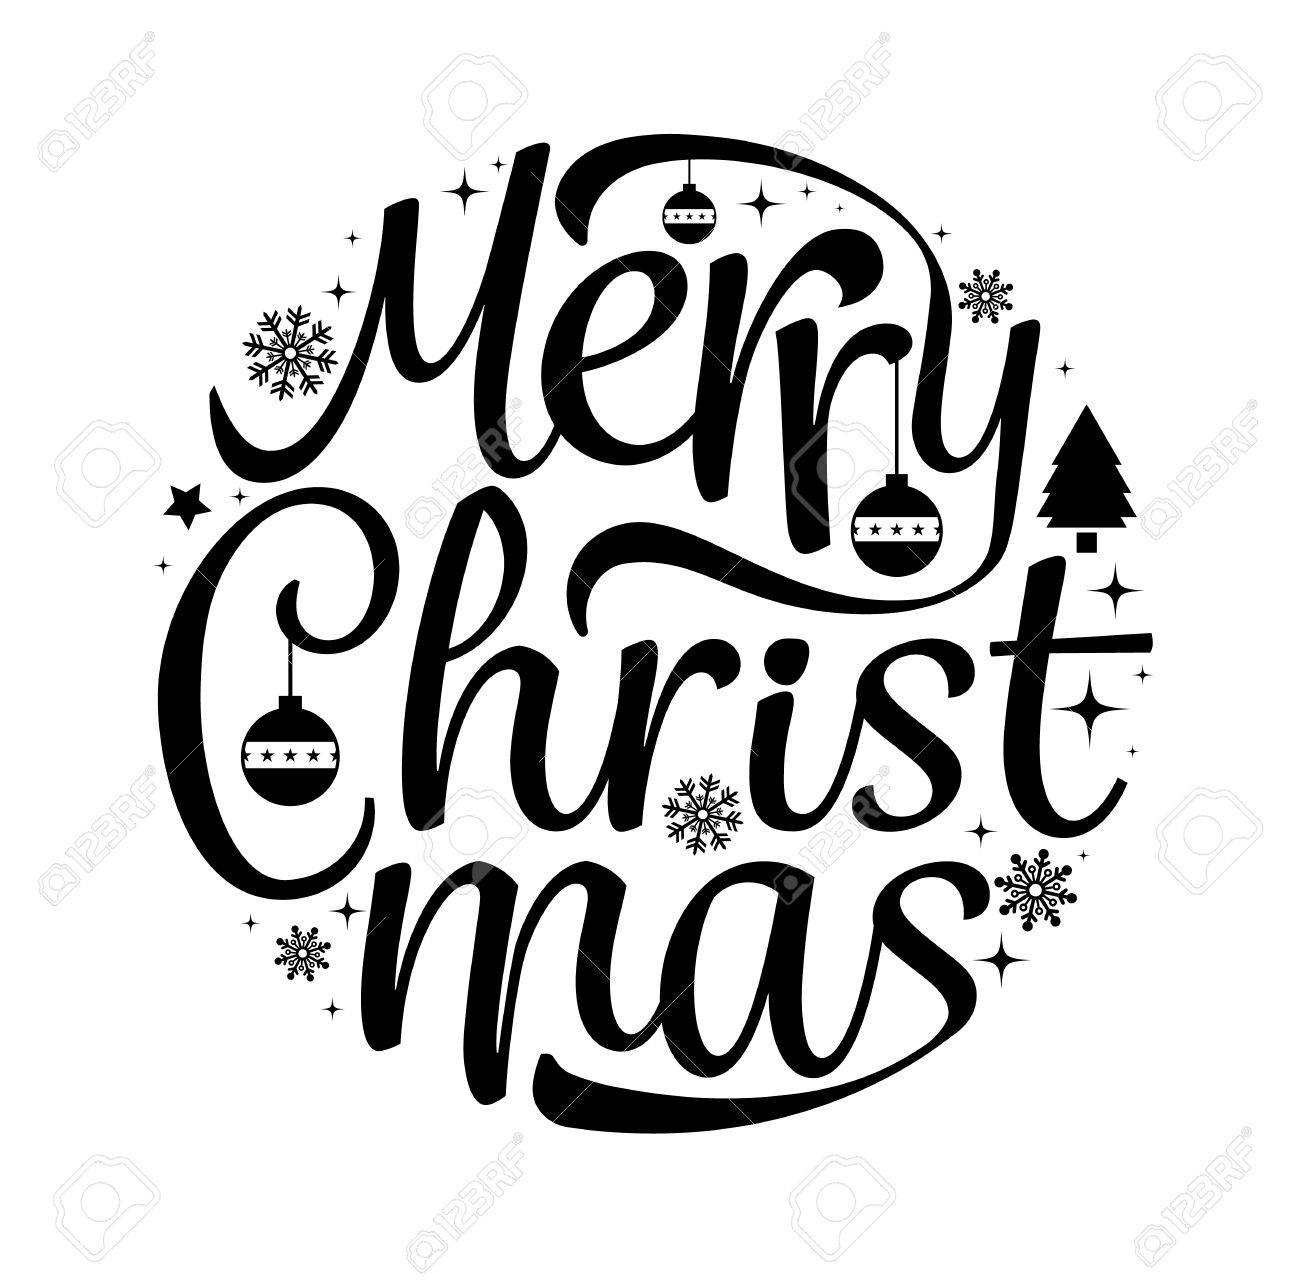 Merry Christmas text free hand design isolated on white background. Vector illustration. - 65656634